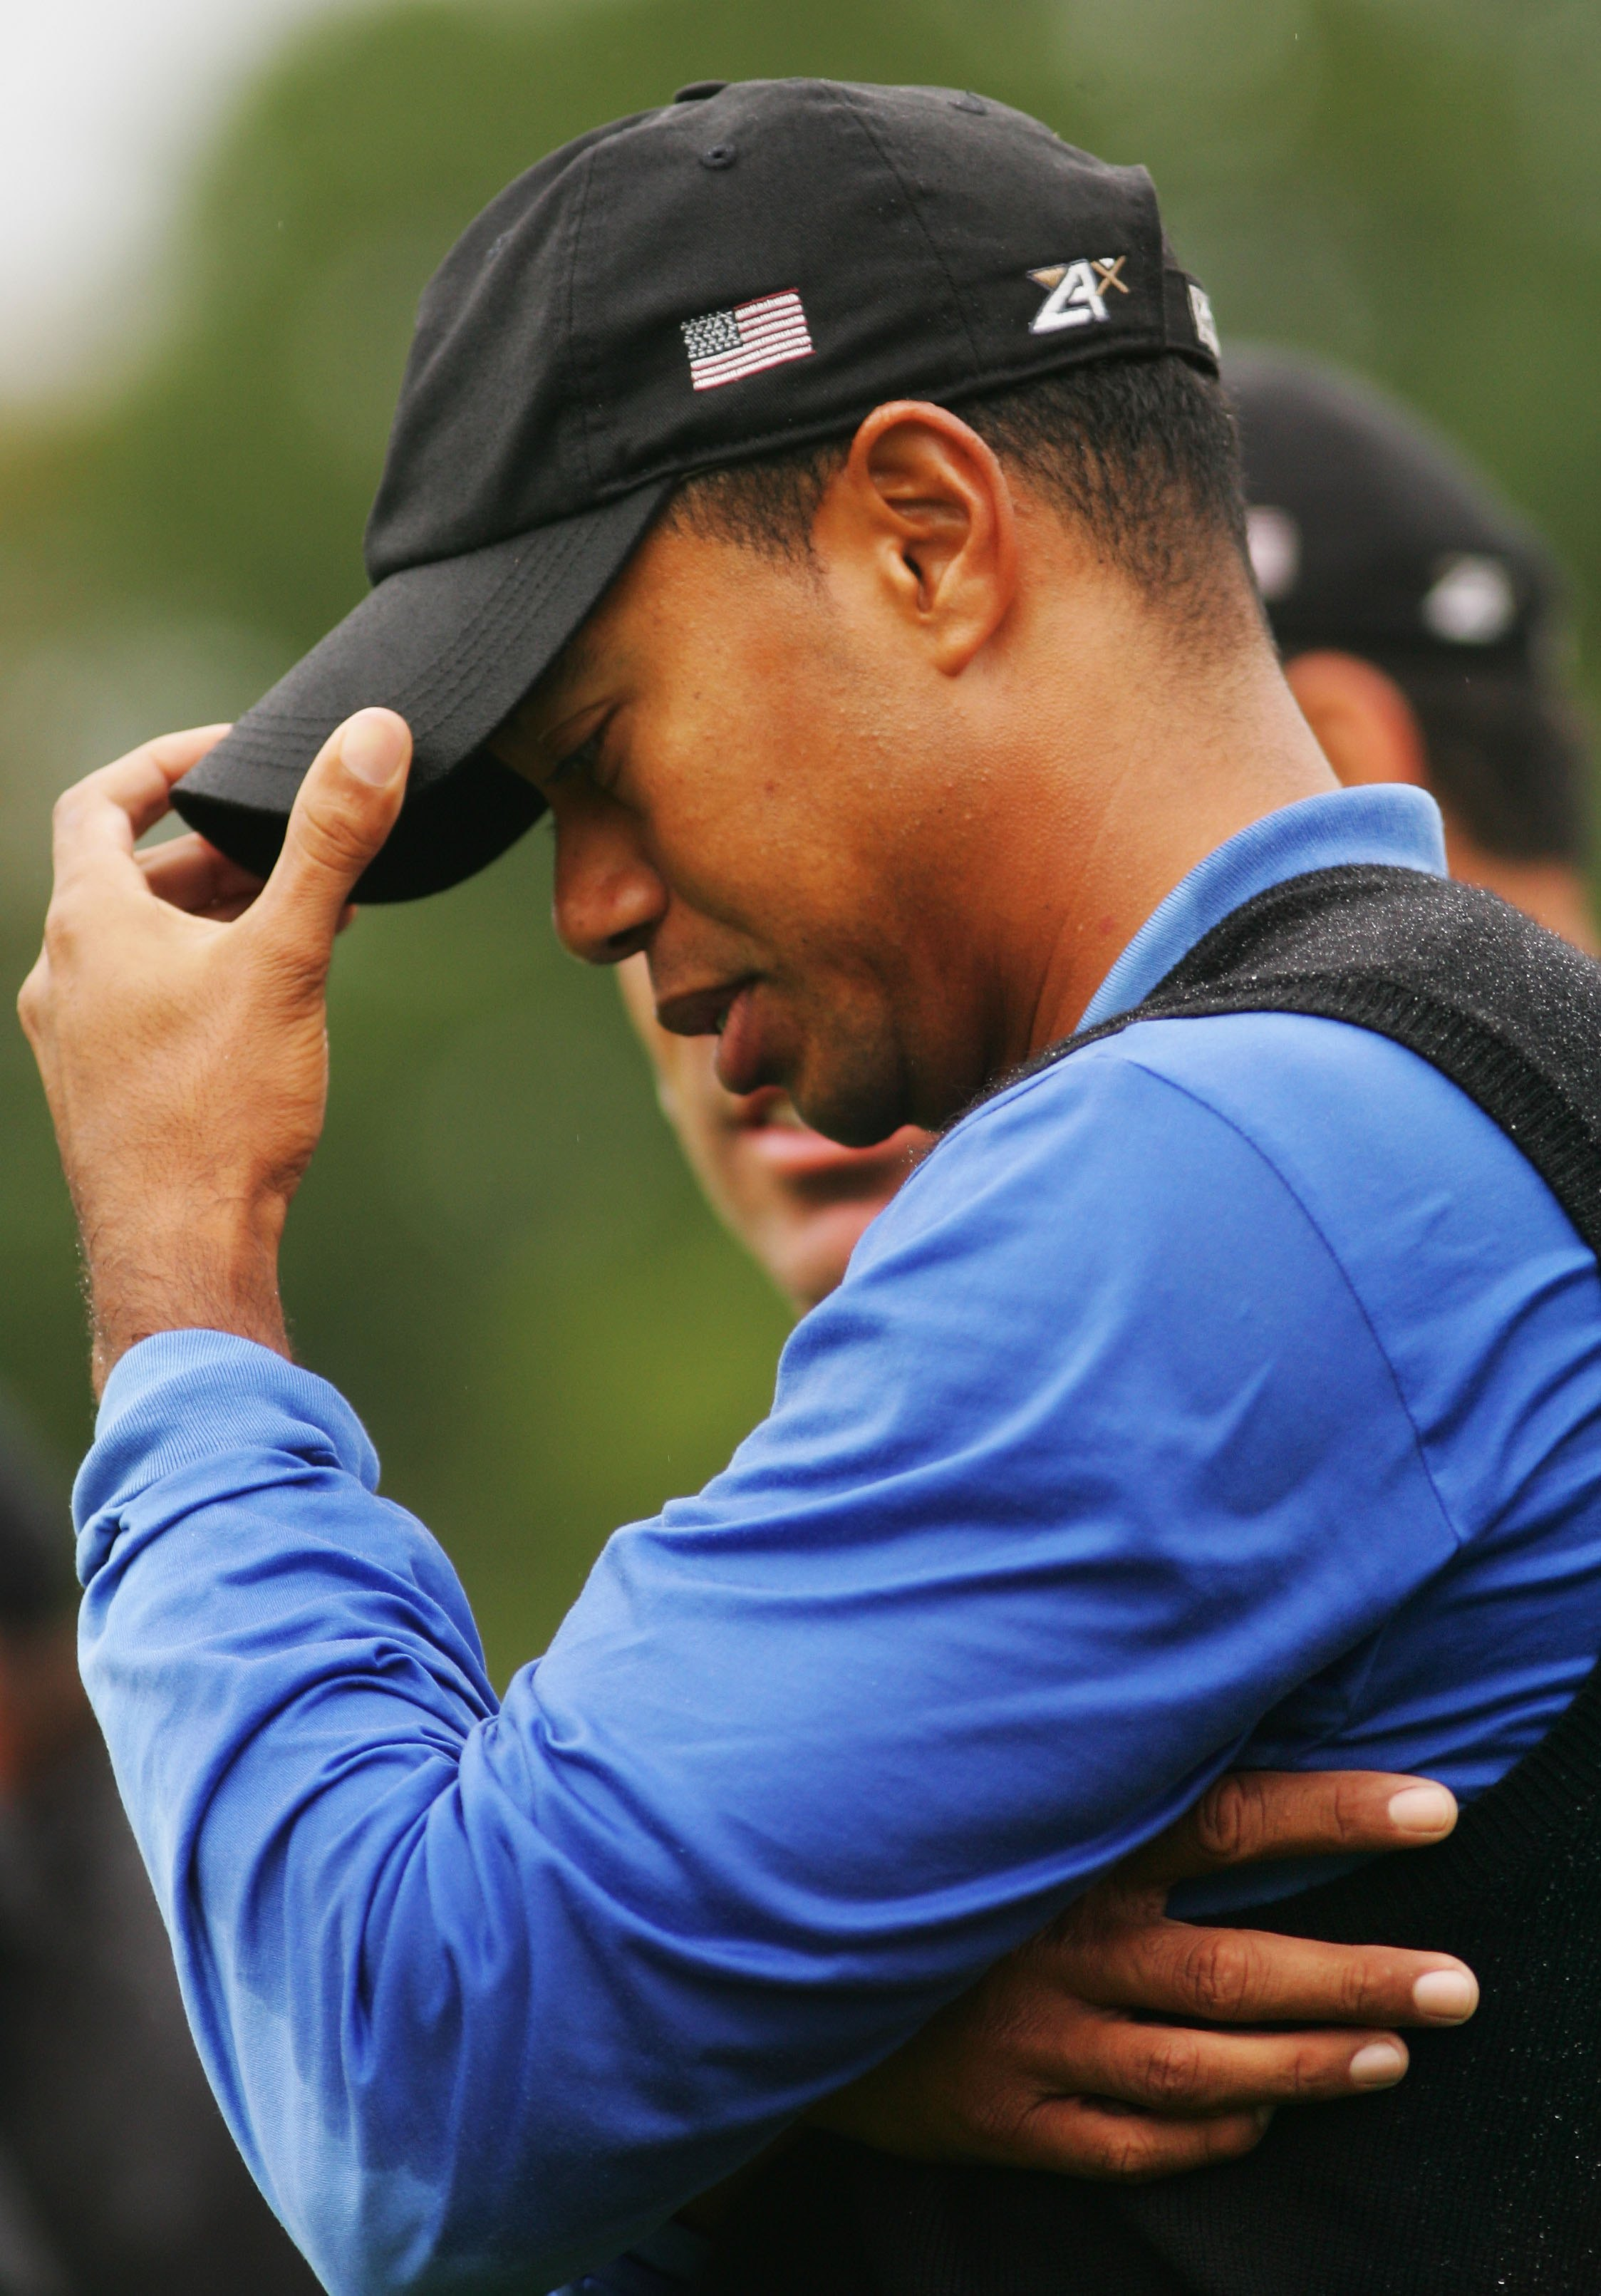 KILDARE, IRELAND - SEPTEMBER 23:  Tiger Woods of USA shows his dejection following defeat during the morning fourballs on the second day of the 2006 Ryder Cup at The K Club on September 23, 2006 in Straffan, Co. Kildare, Ireland.  (Photo by Ross Kinnaird/